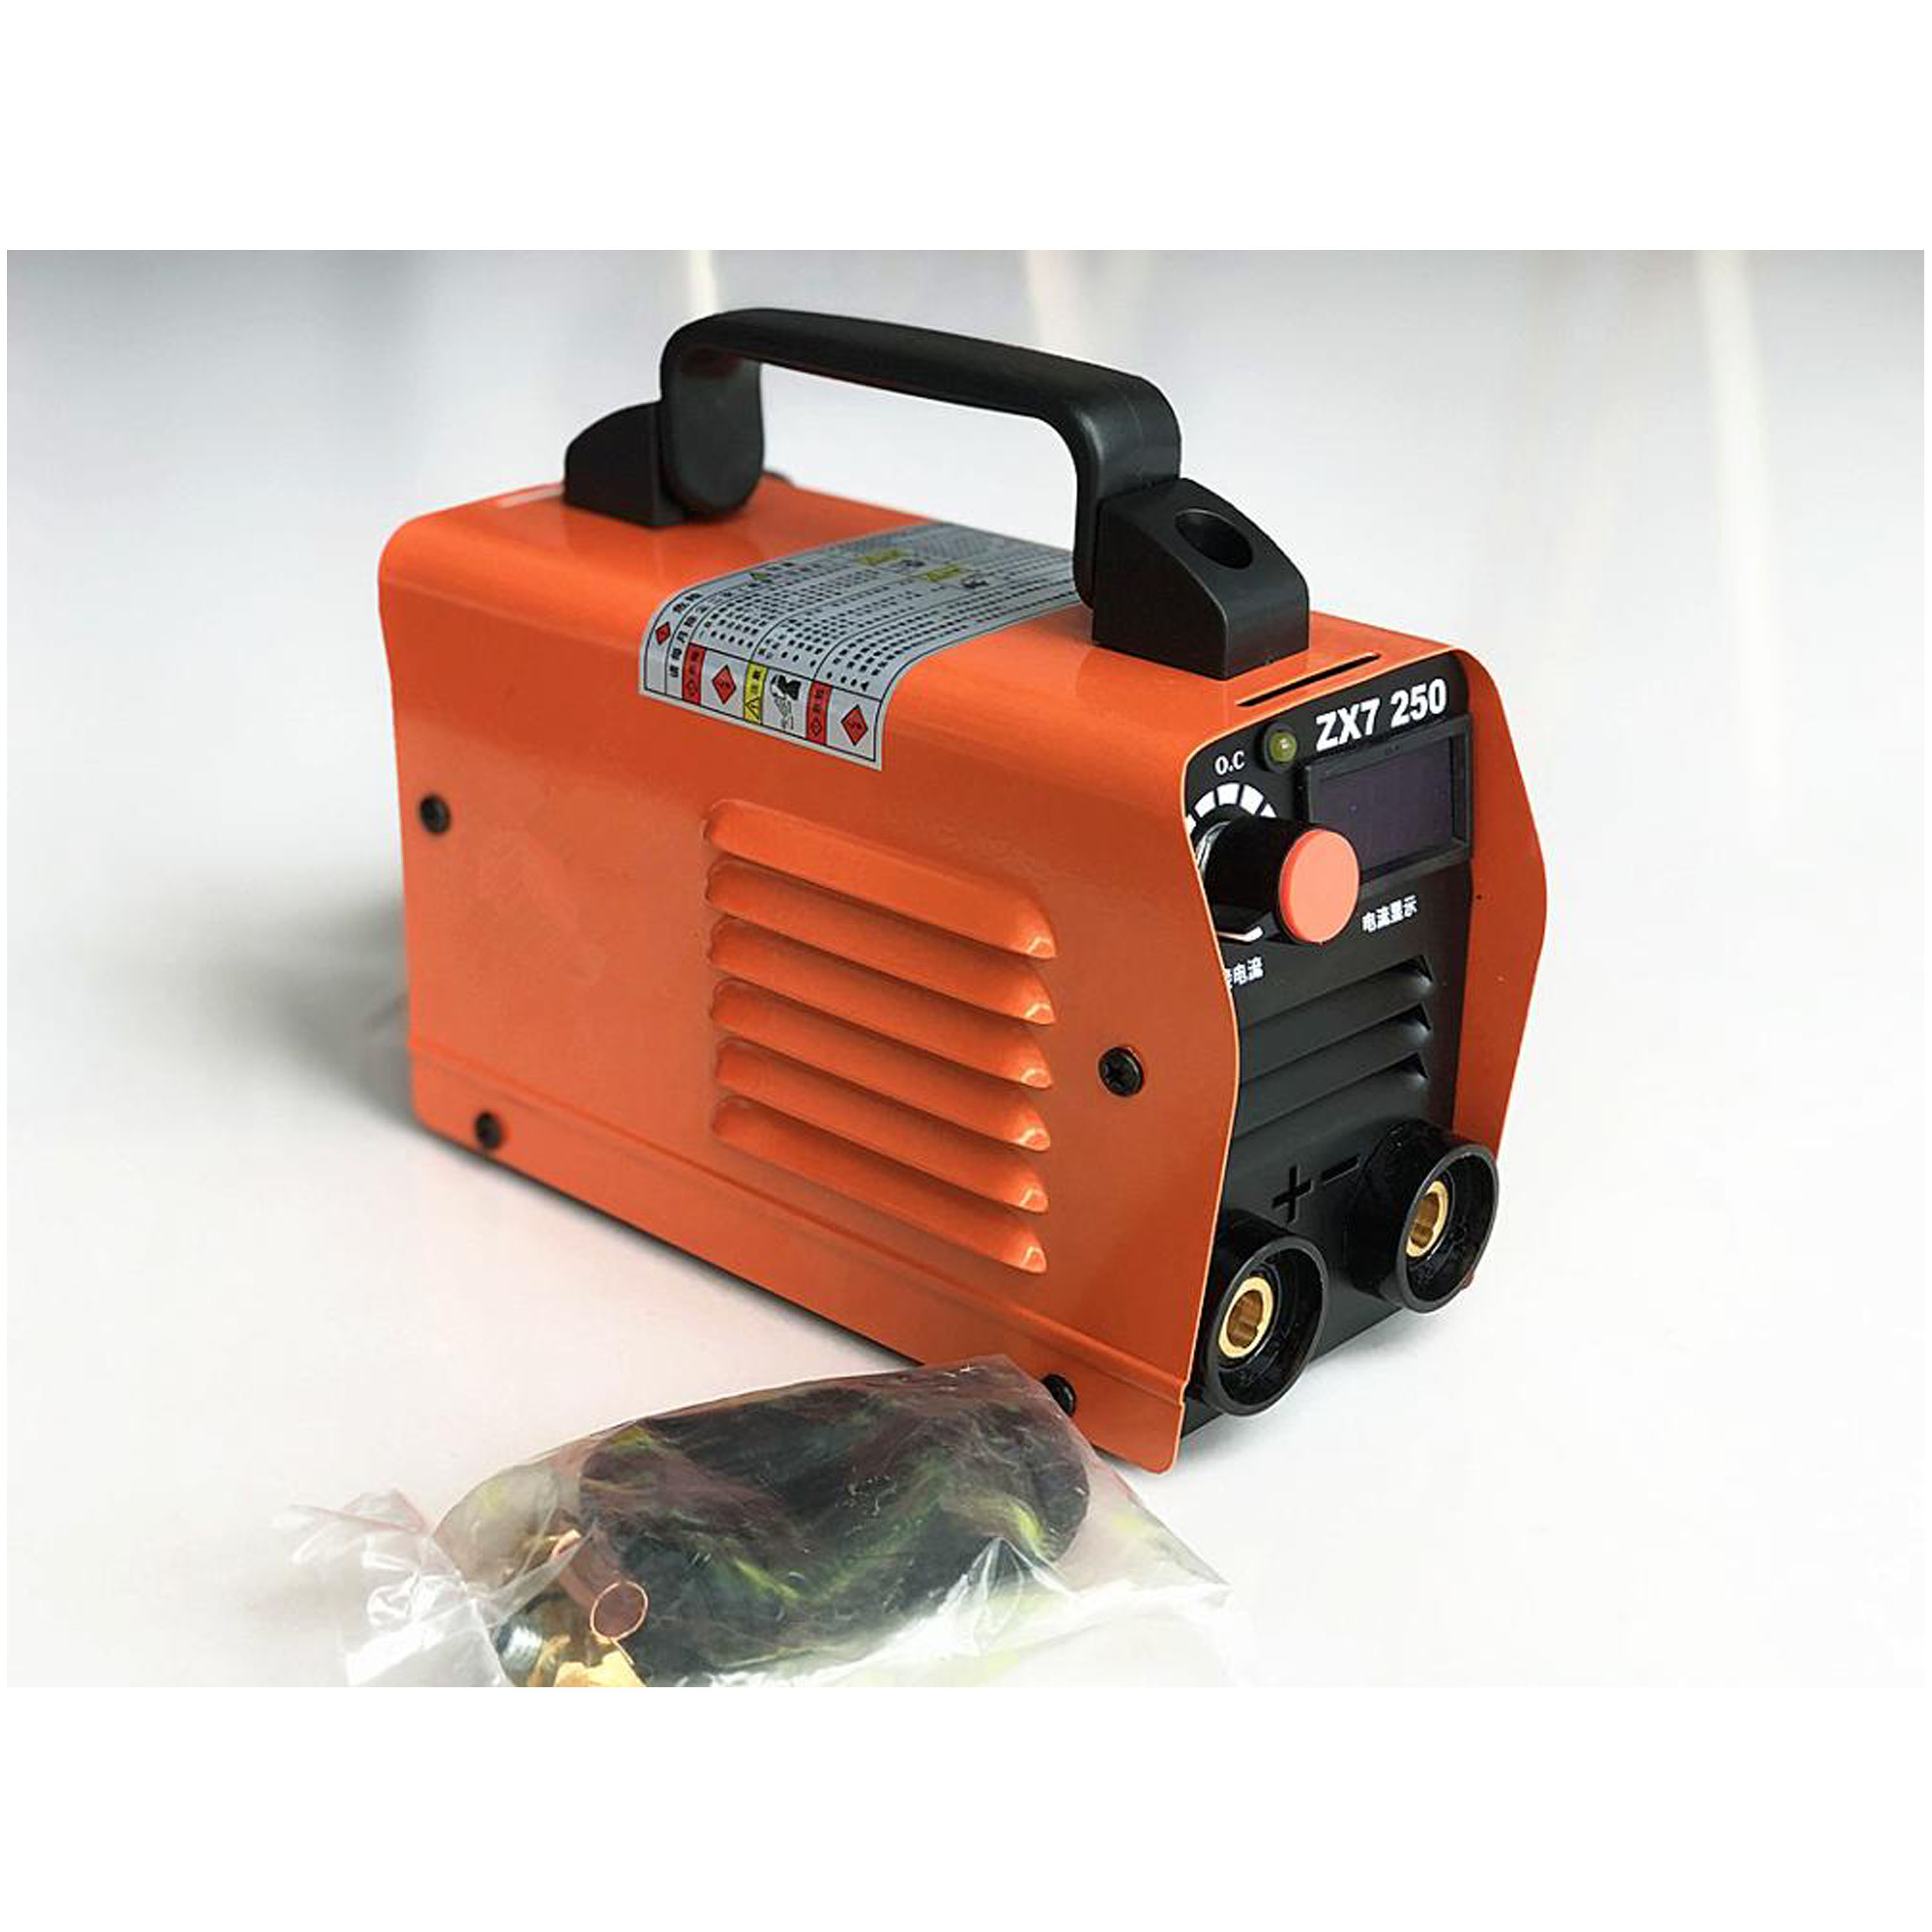 RU Delivery ZX7-250 Mini Welding Machine 250A 110-250V Welding Inverter